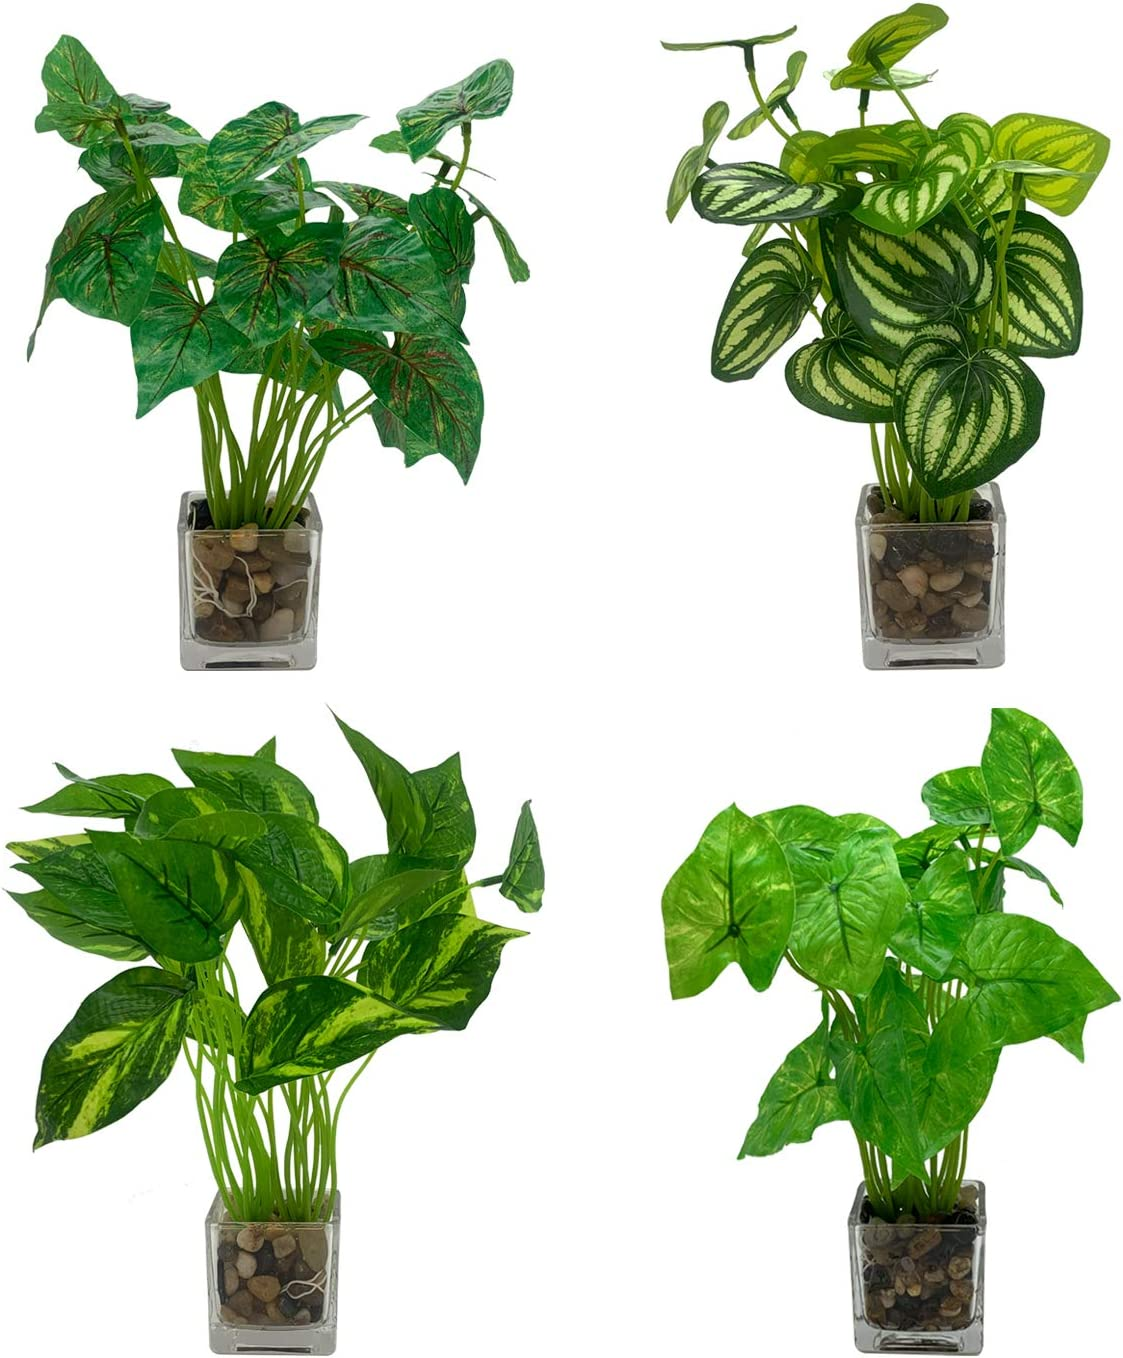 Set of 4 Artificial Greenery Plants with Decorative Stones in Clear Pots – Realistic Greenery Mini Potted Faux Plant Arrangements | for Home Office Decor, Shelf, Bathroom, Kitchen Table Centerpieces